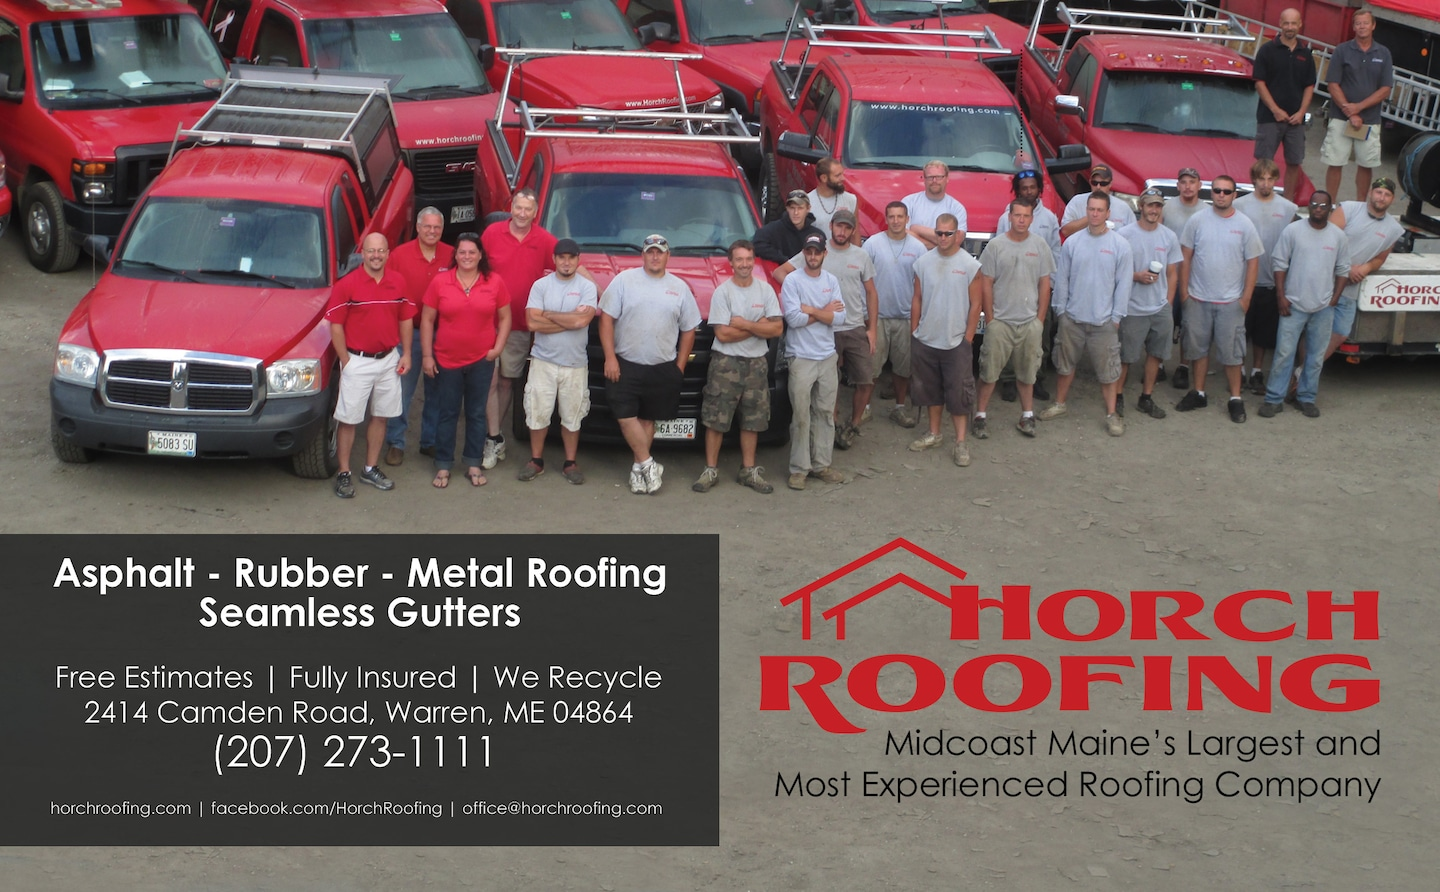 Horch Roofing Inc